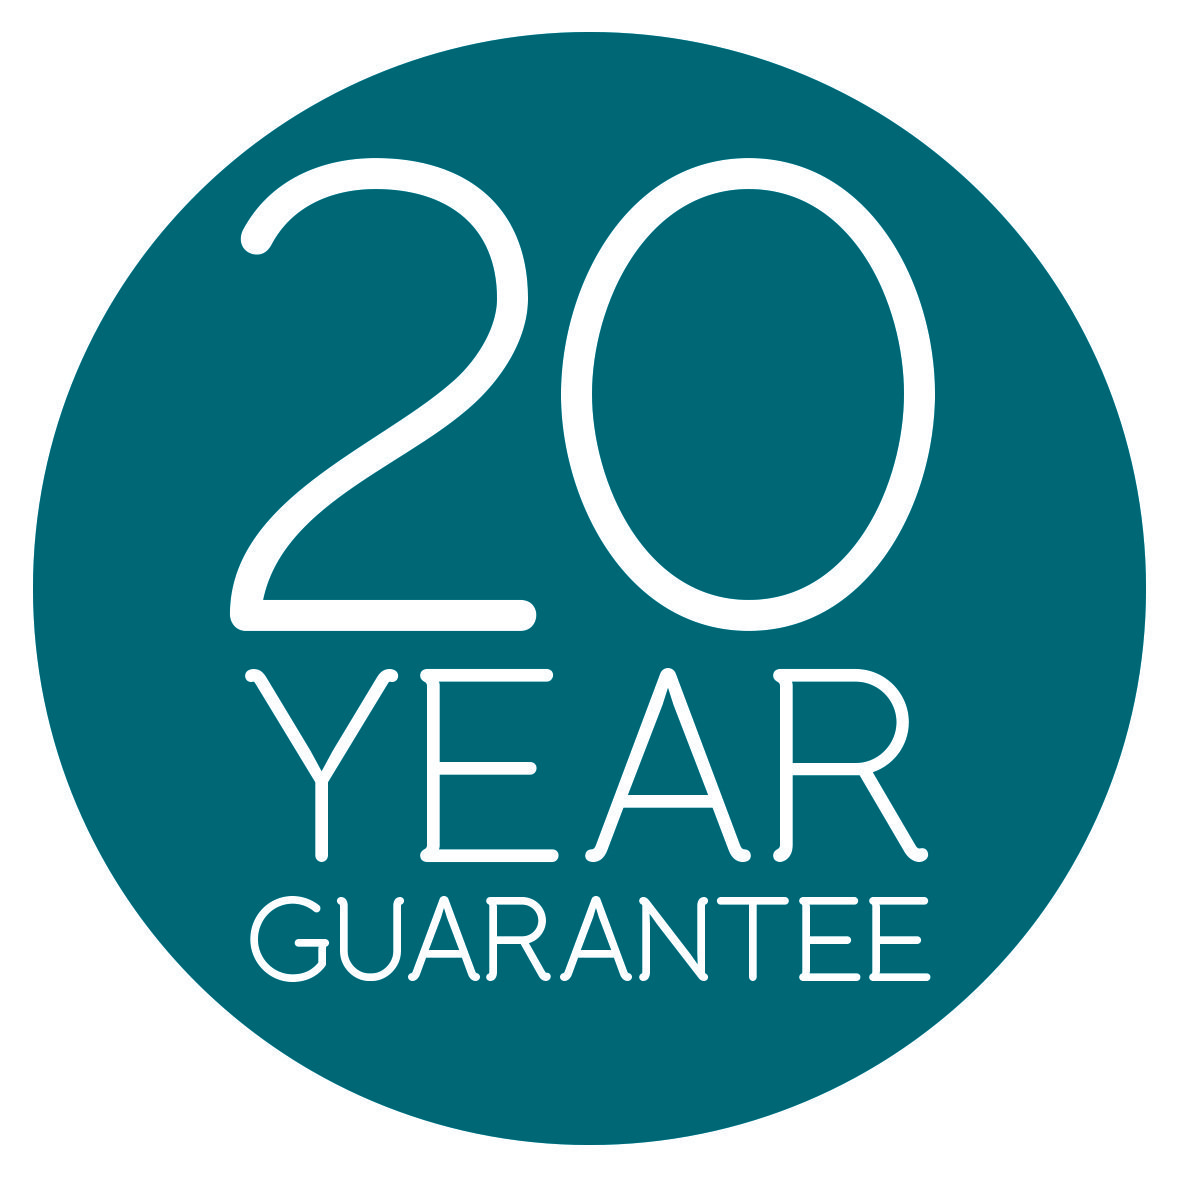 20 YEAR GUARANTEE